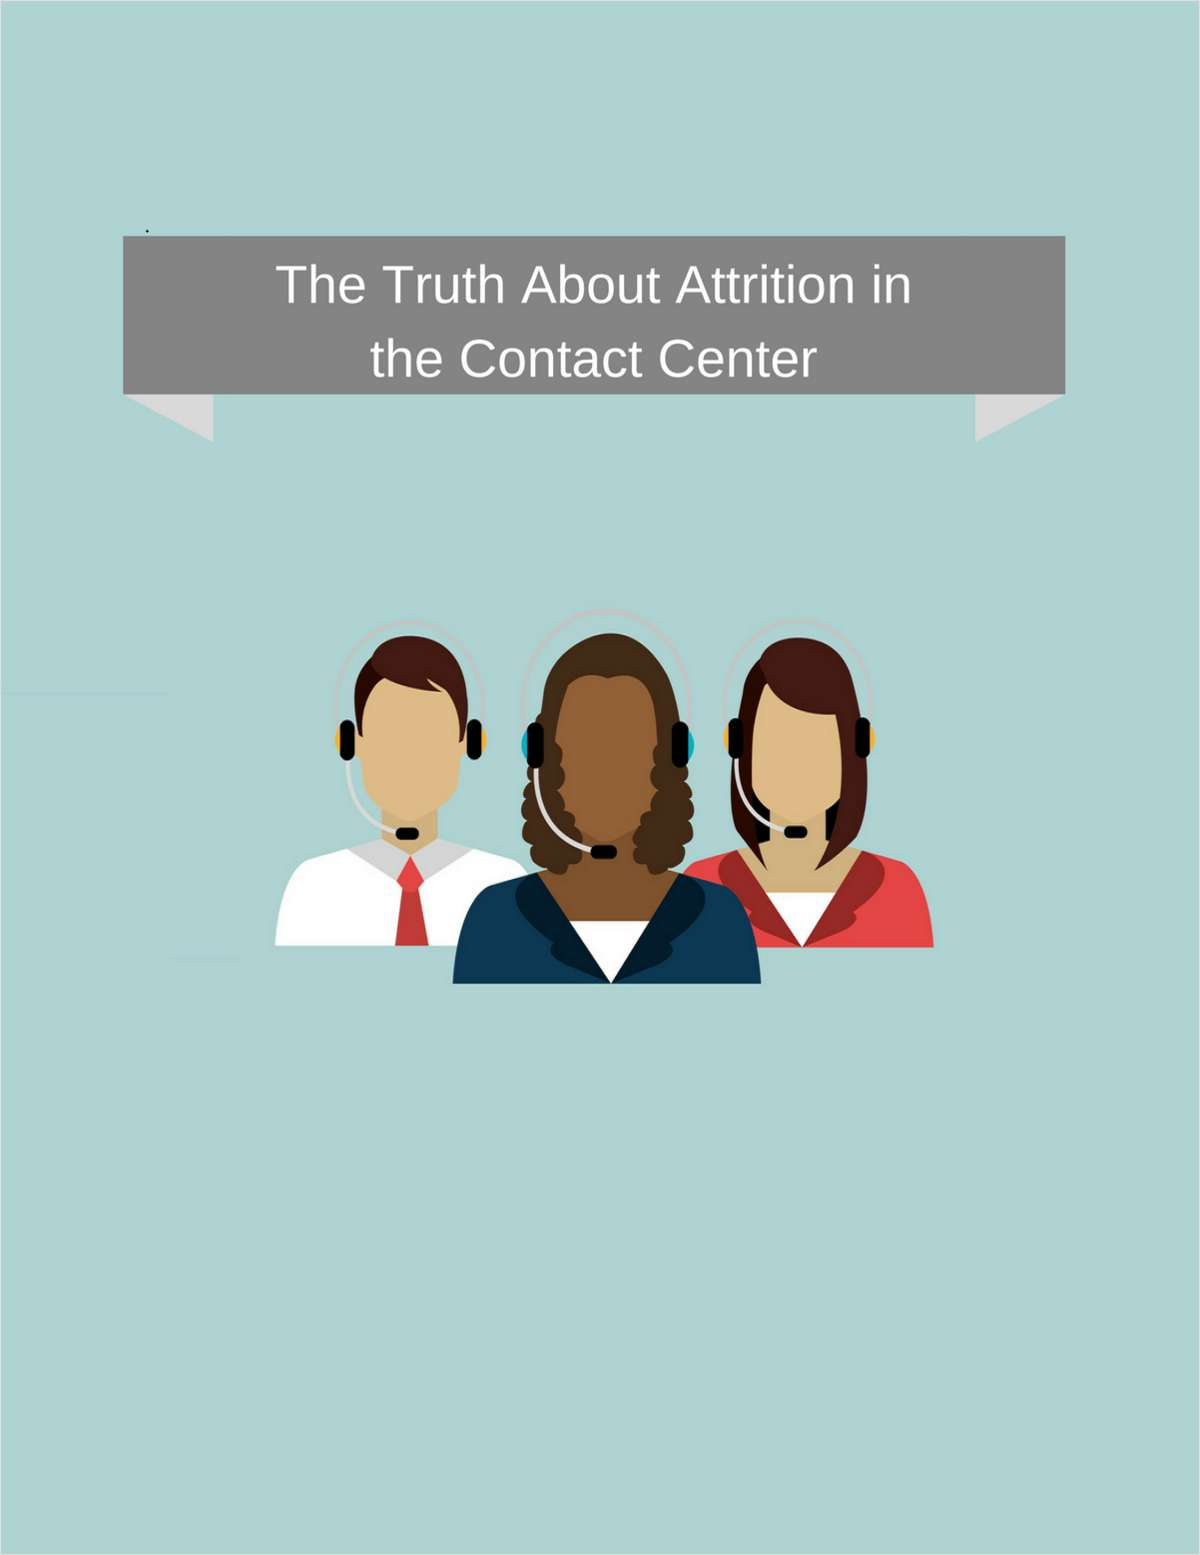 The Truth About Attrition in the Contact Center